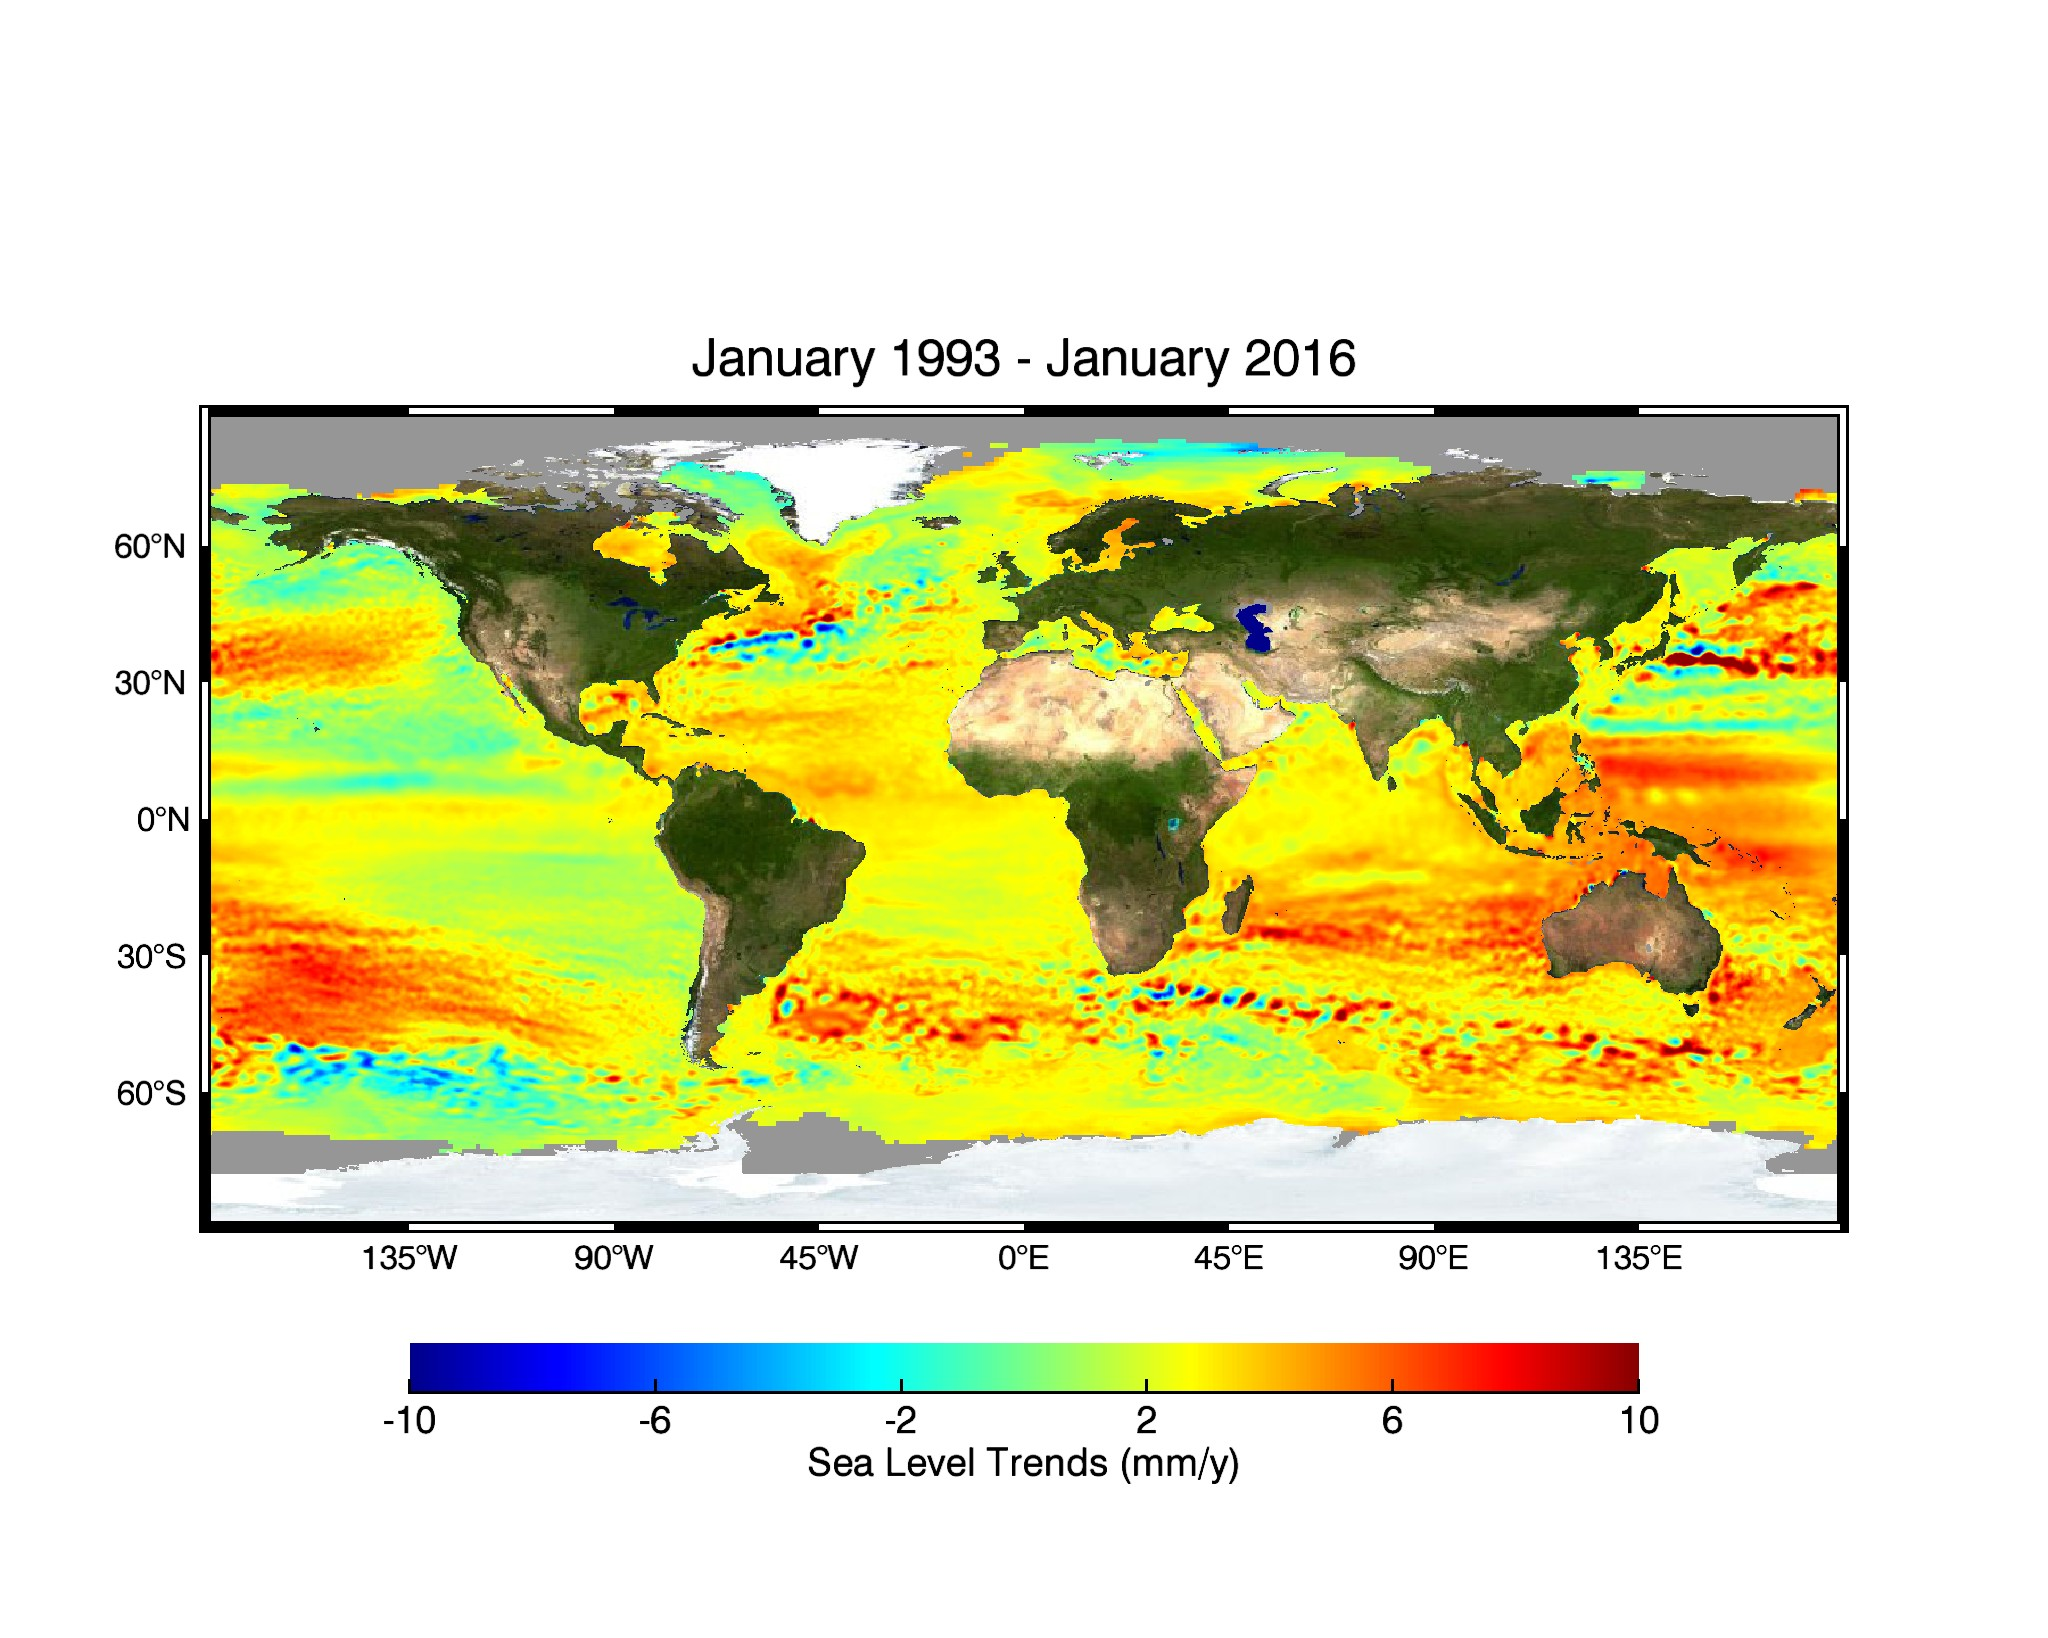 Sea level trends (1993-2016)